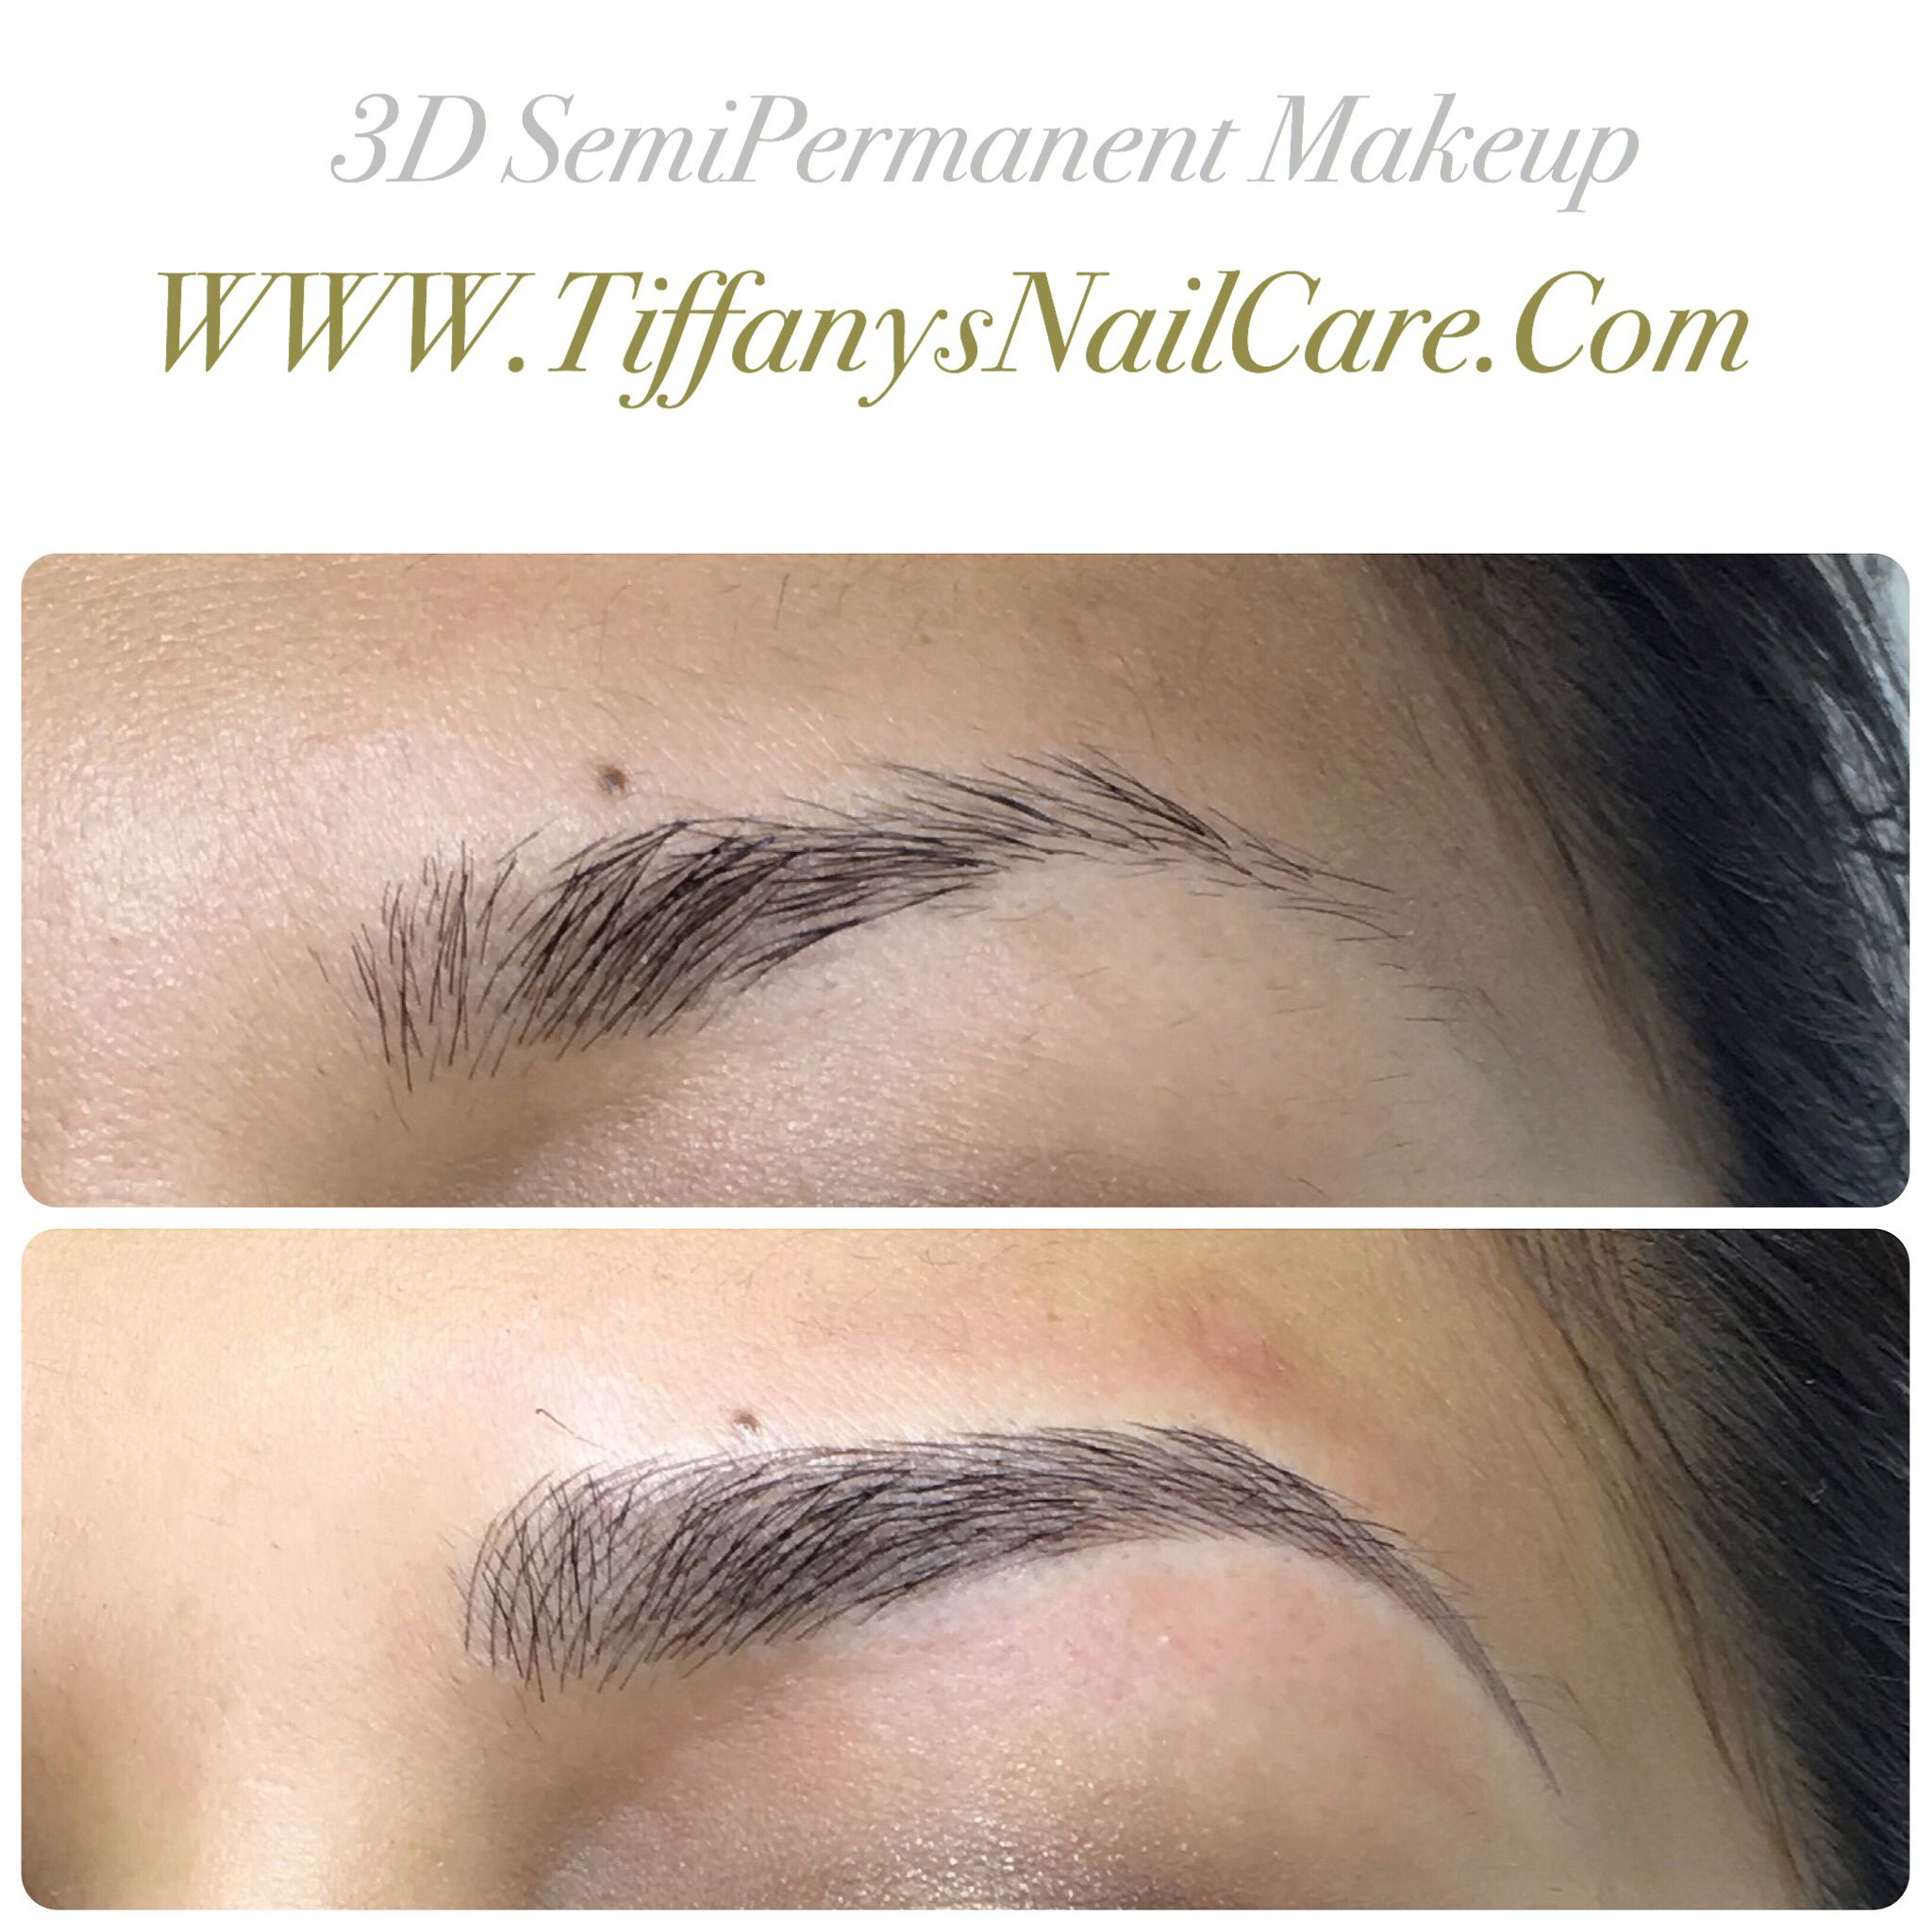 Microblading 3d Hair Strokes: 3d Hair Stroke Semi Permanent Makeup Brow Tattoo. Cosmetic